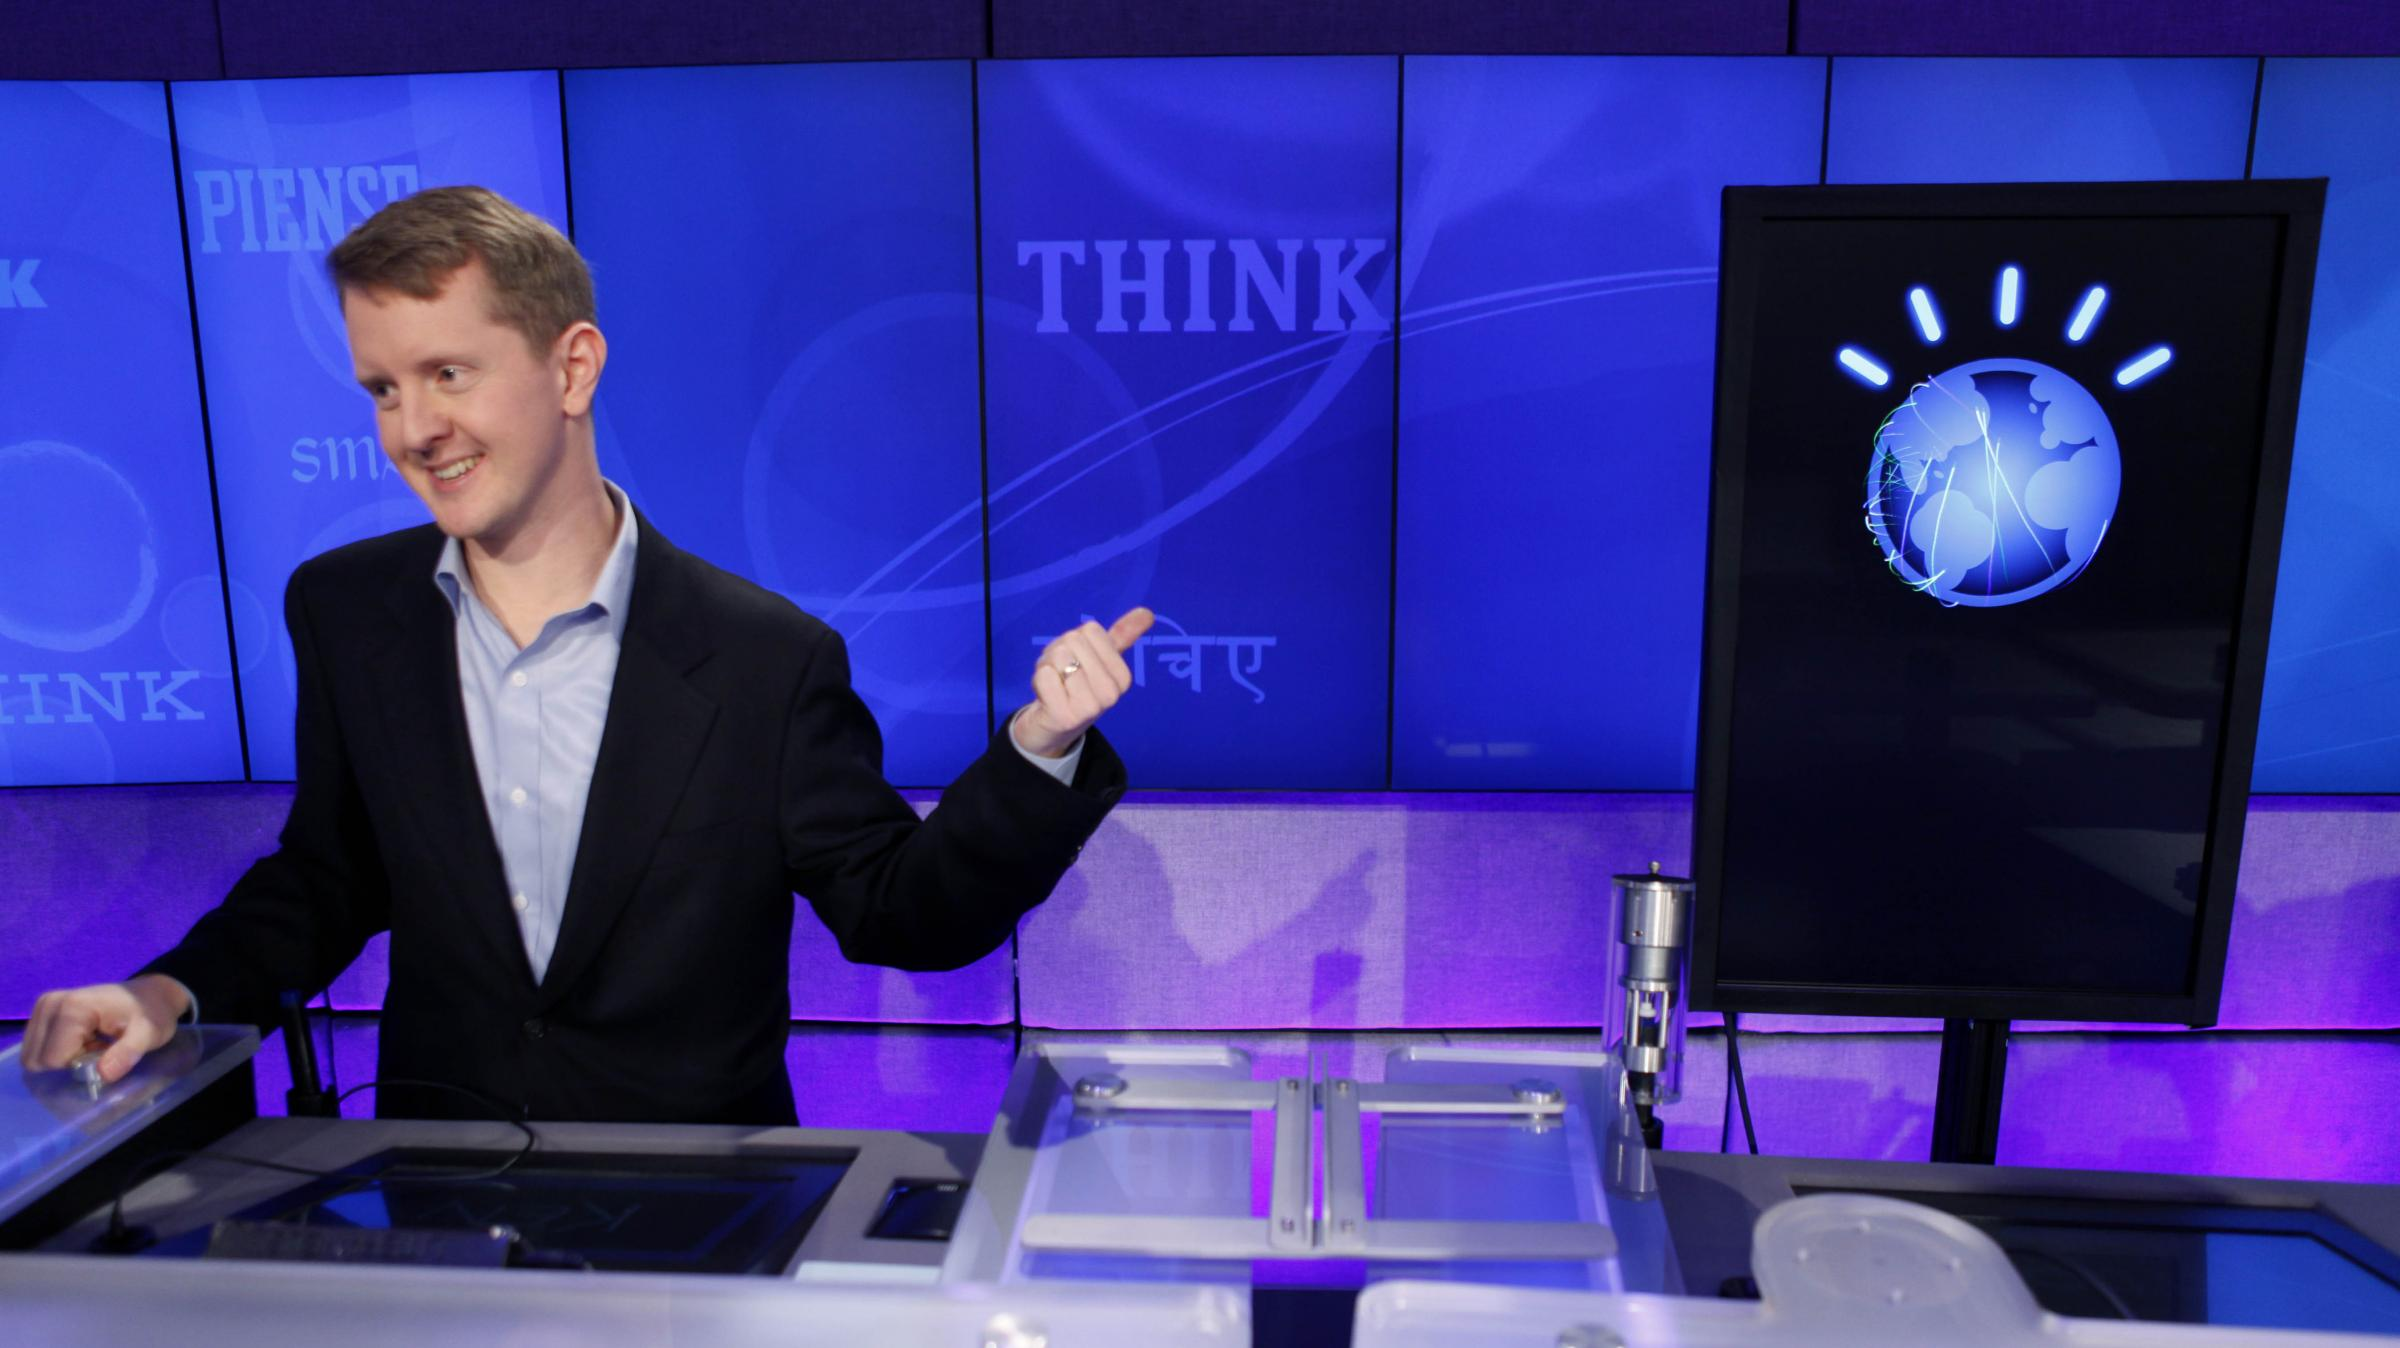 jeopardy contestant ken jennings who won a record 74 consecutive games concedes to supercomputer opponent watson in february 2011